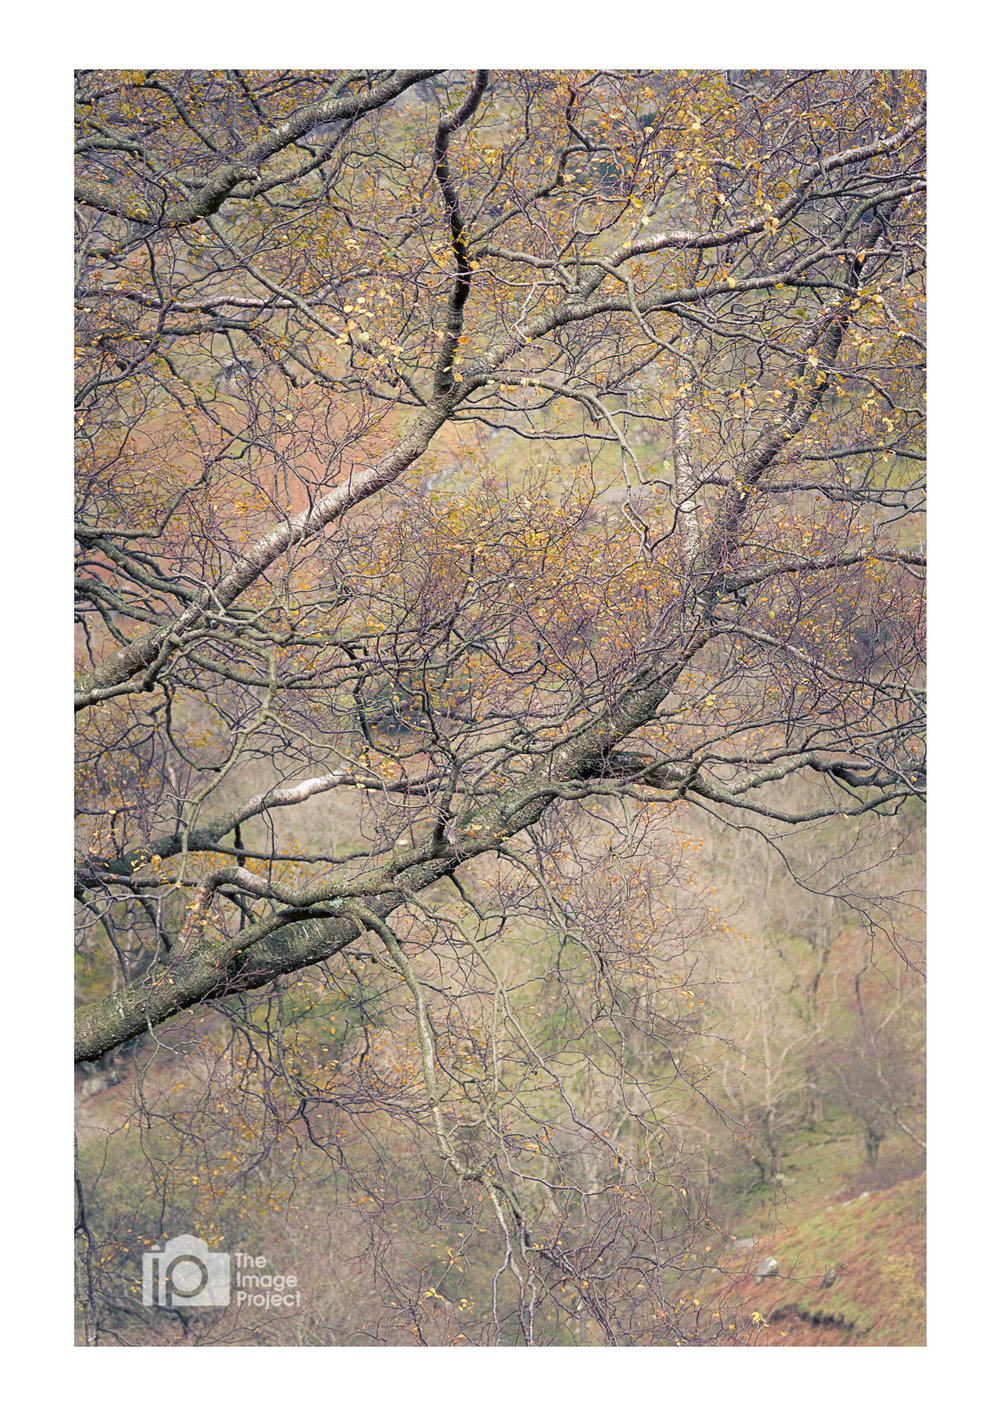 Branches in dense autumn woodland near Grasmere